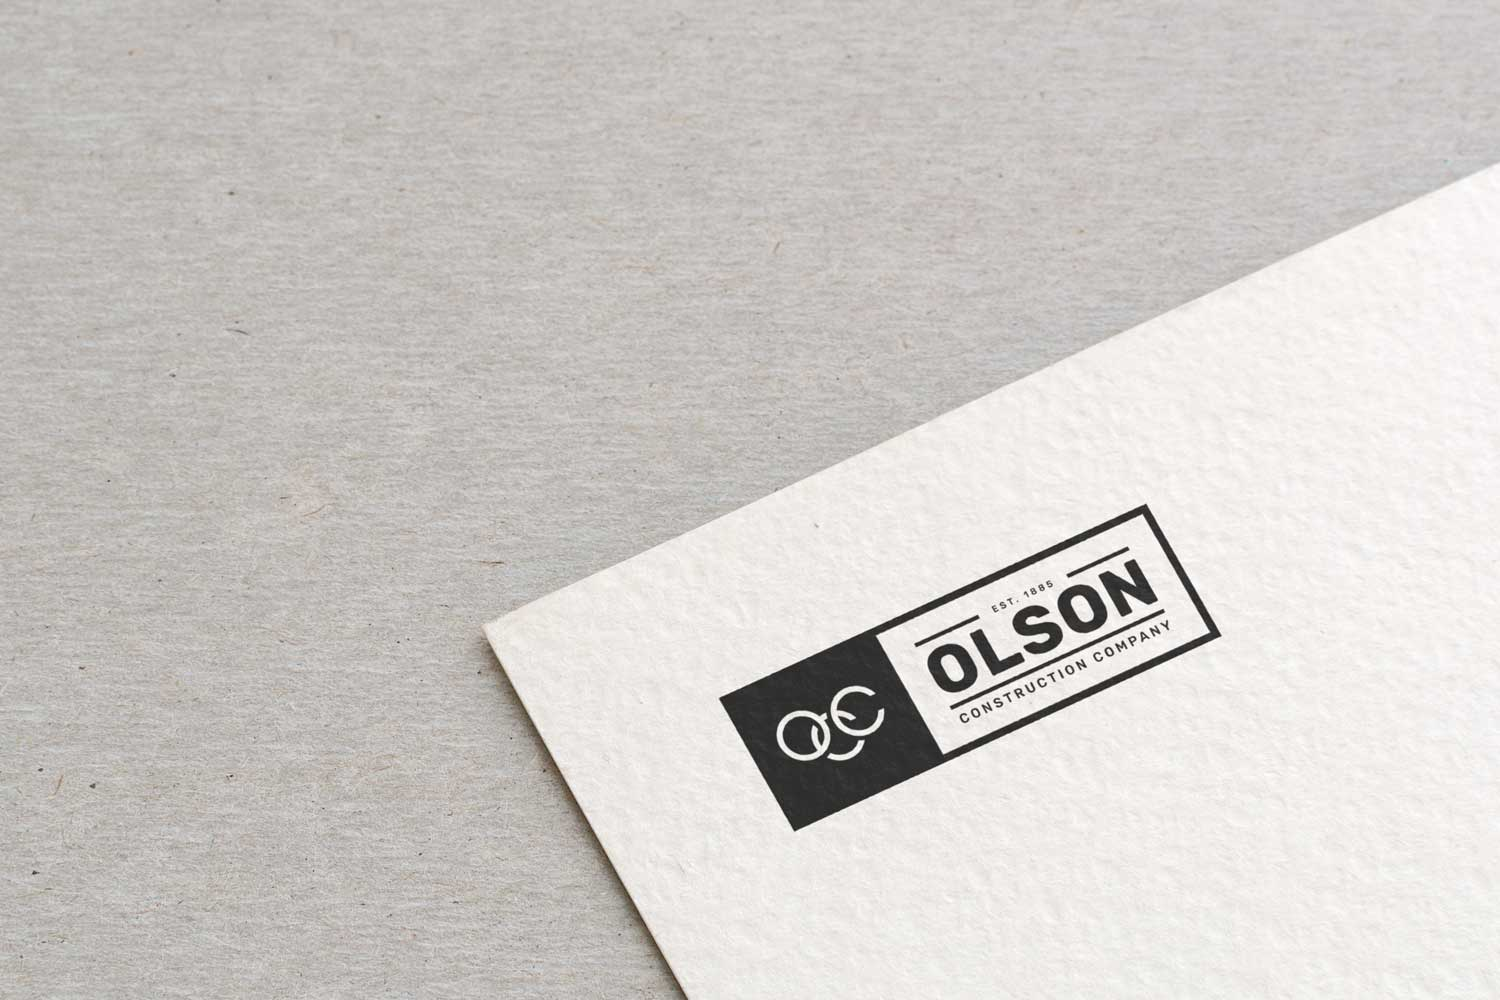 Final logo for Olson Construction Company presented on letterhead